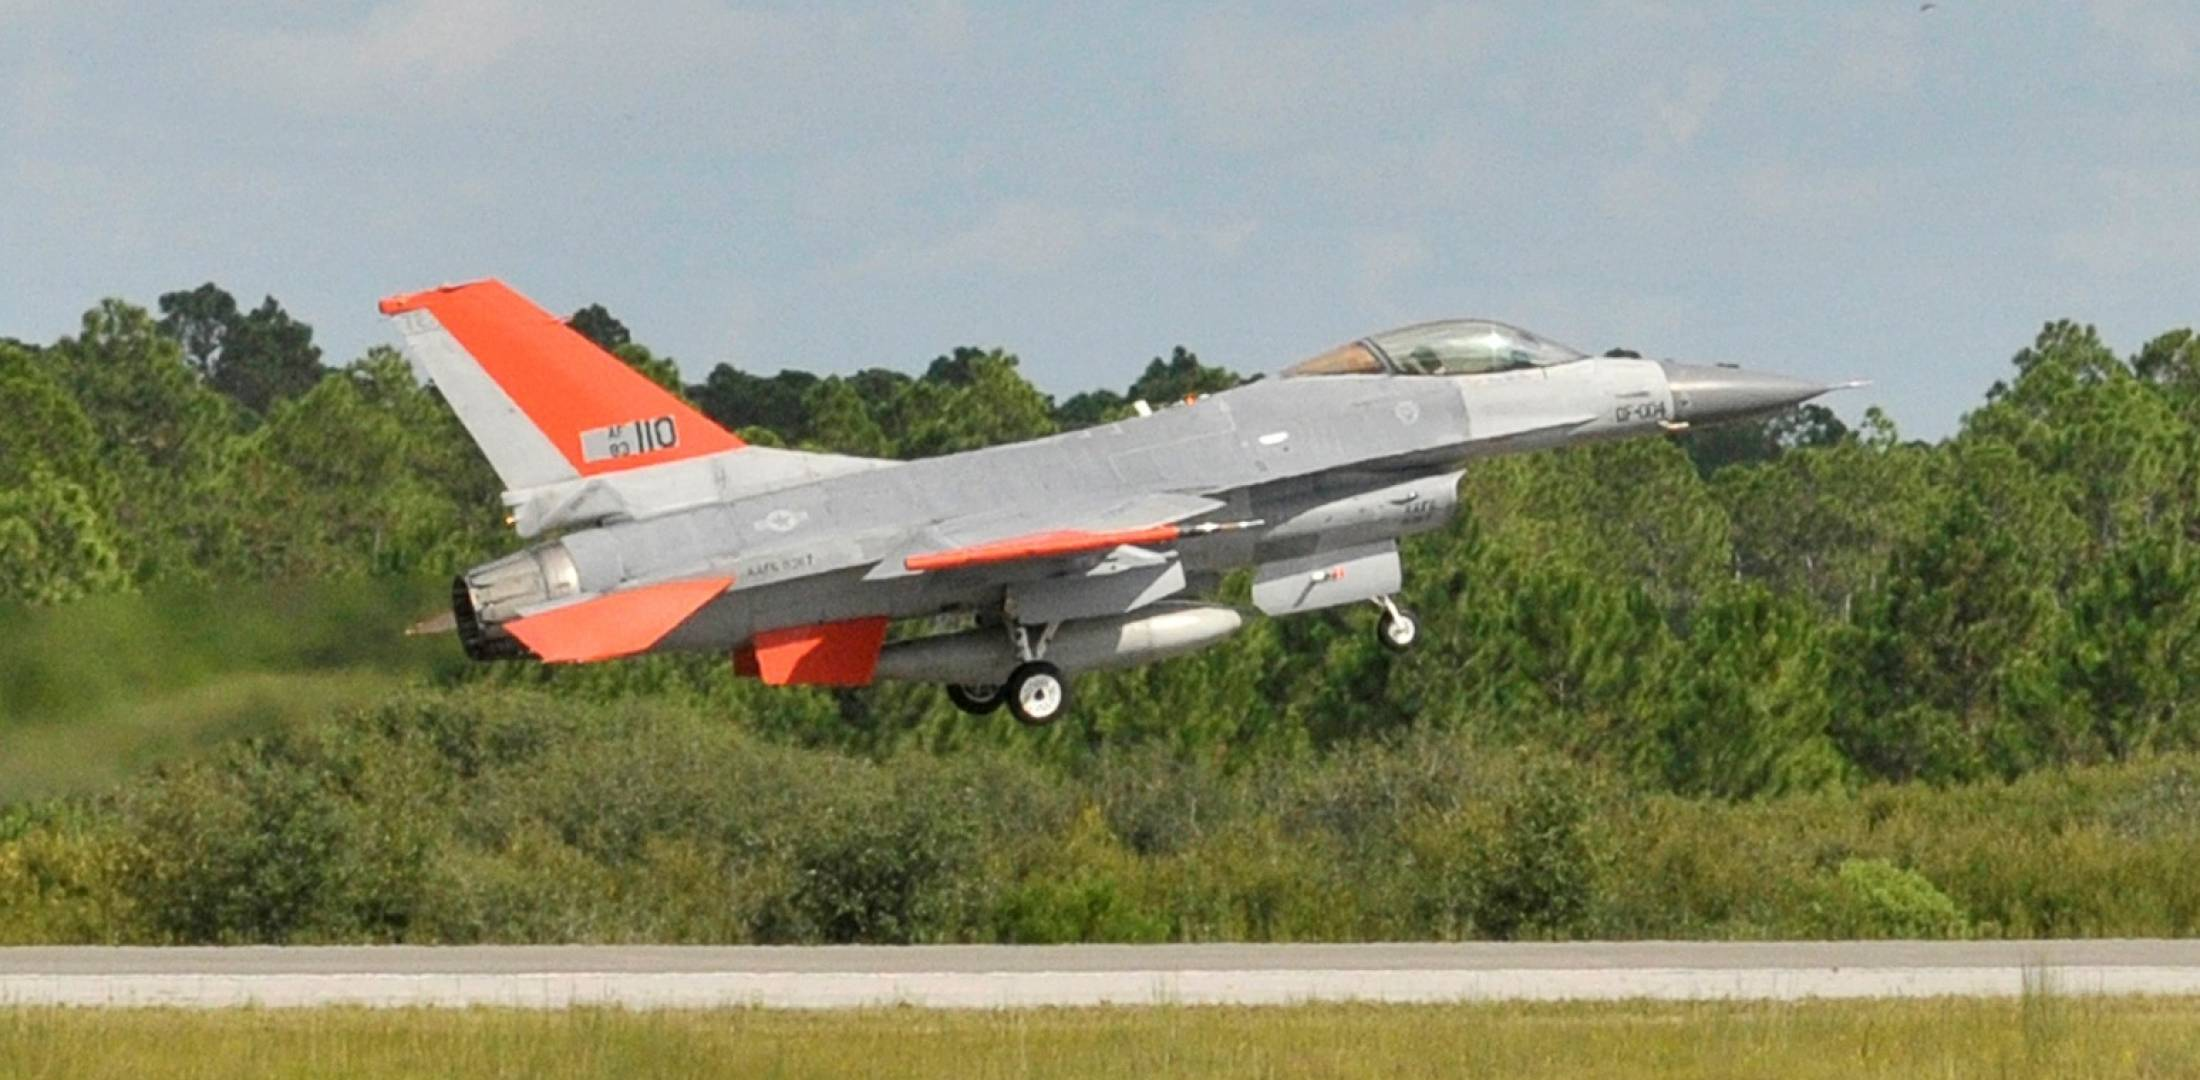 Boeing QF-16 full-scale aerial target